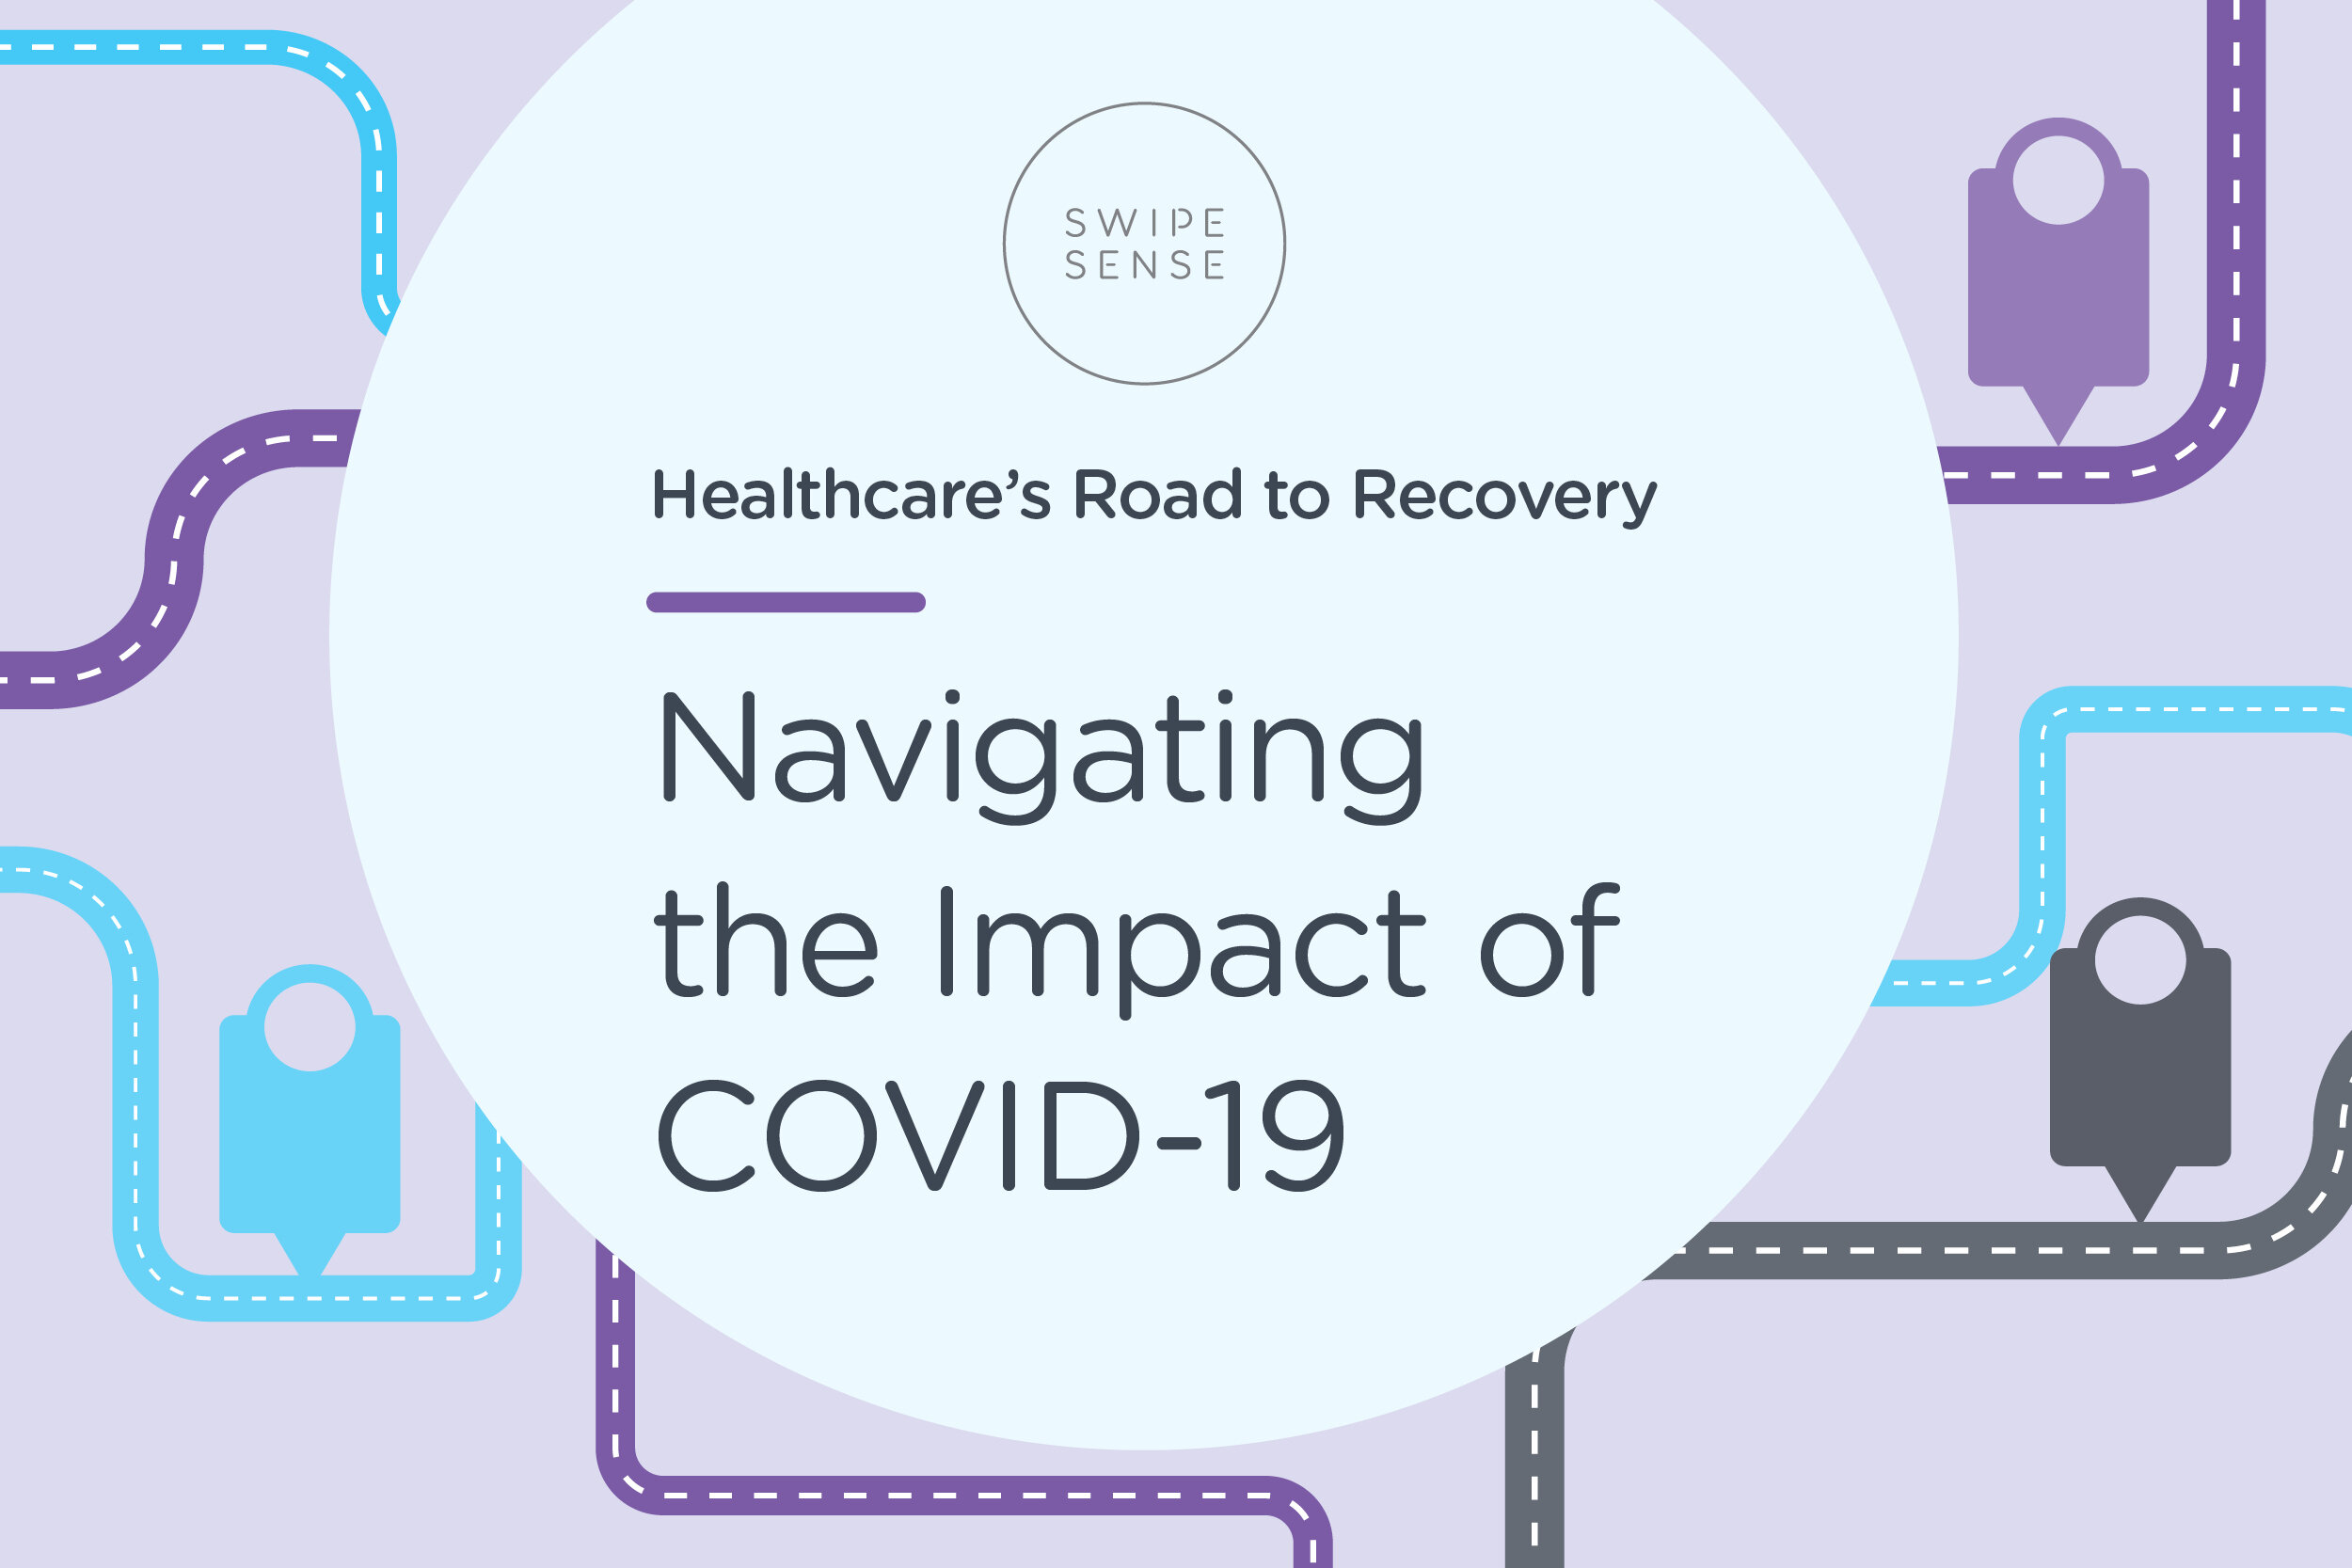 [Roadmap] 4 Steps to Evaluate Your Hospital's COVID-19 Recovery Plan